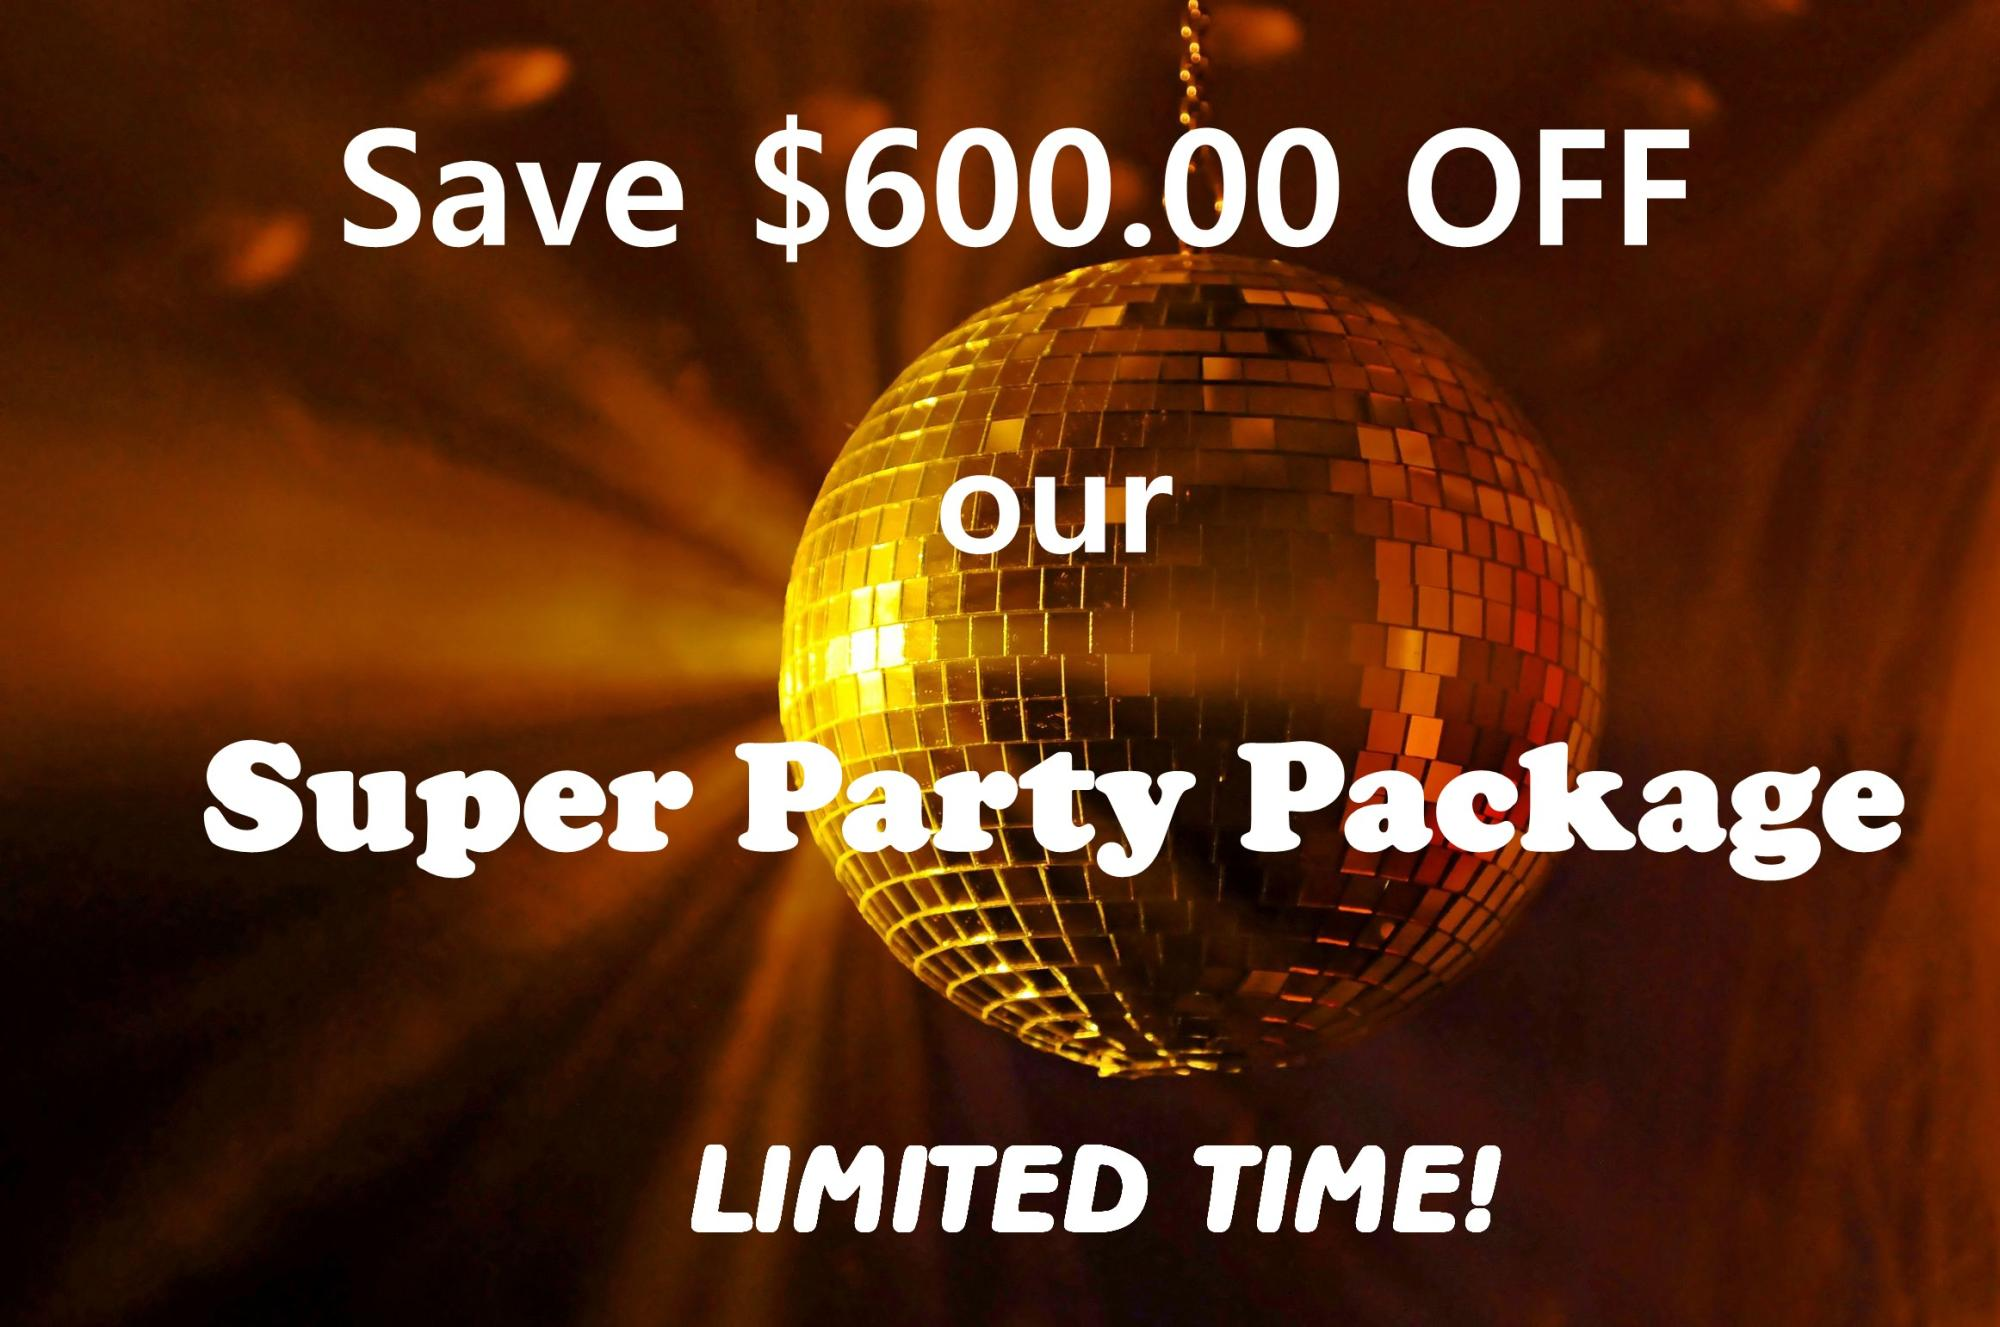 Save $600.00 Limited Time Offer